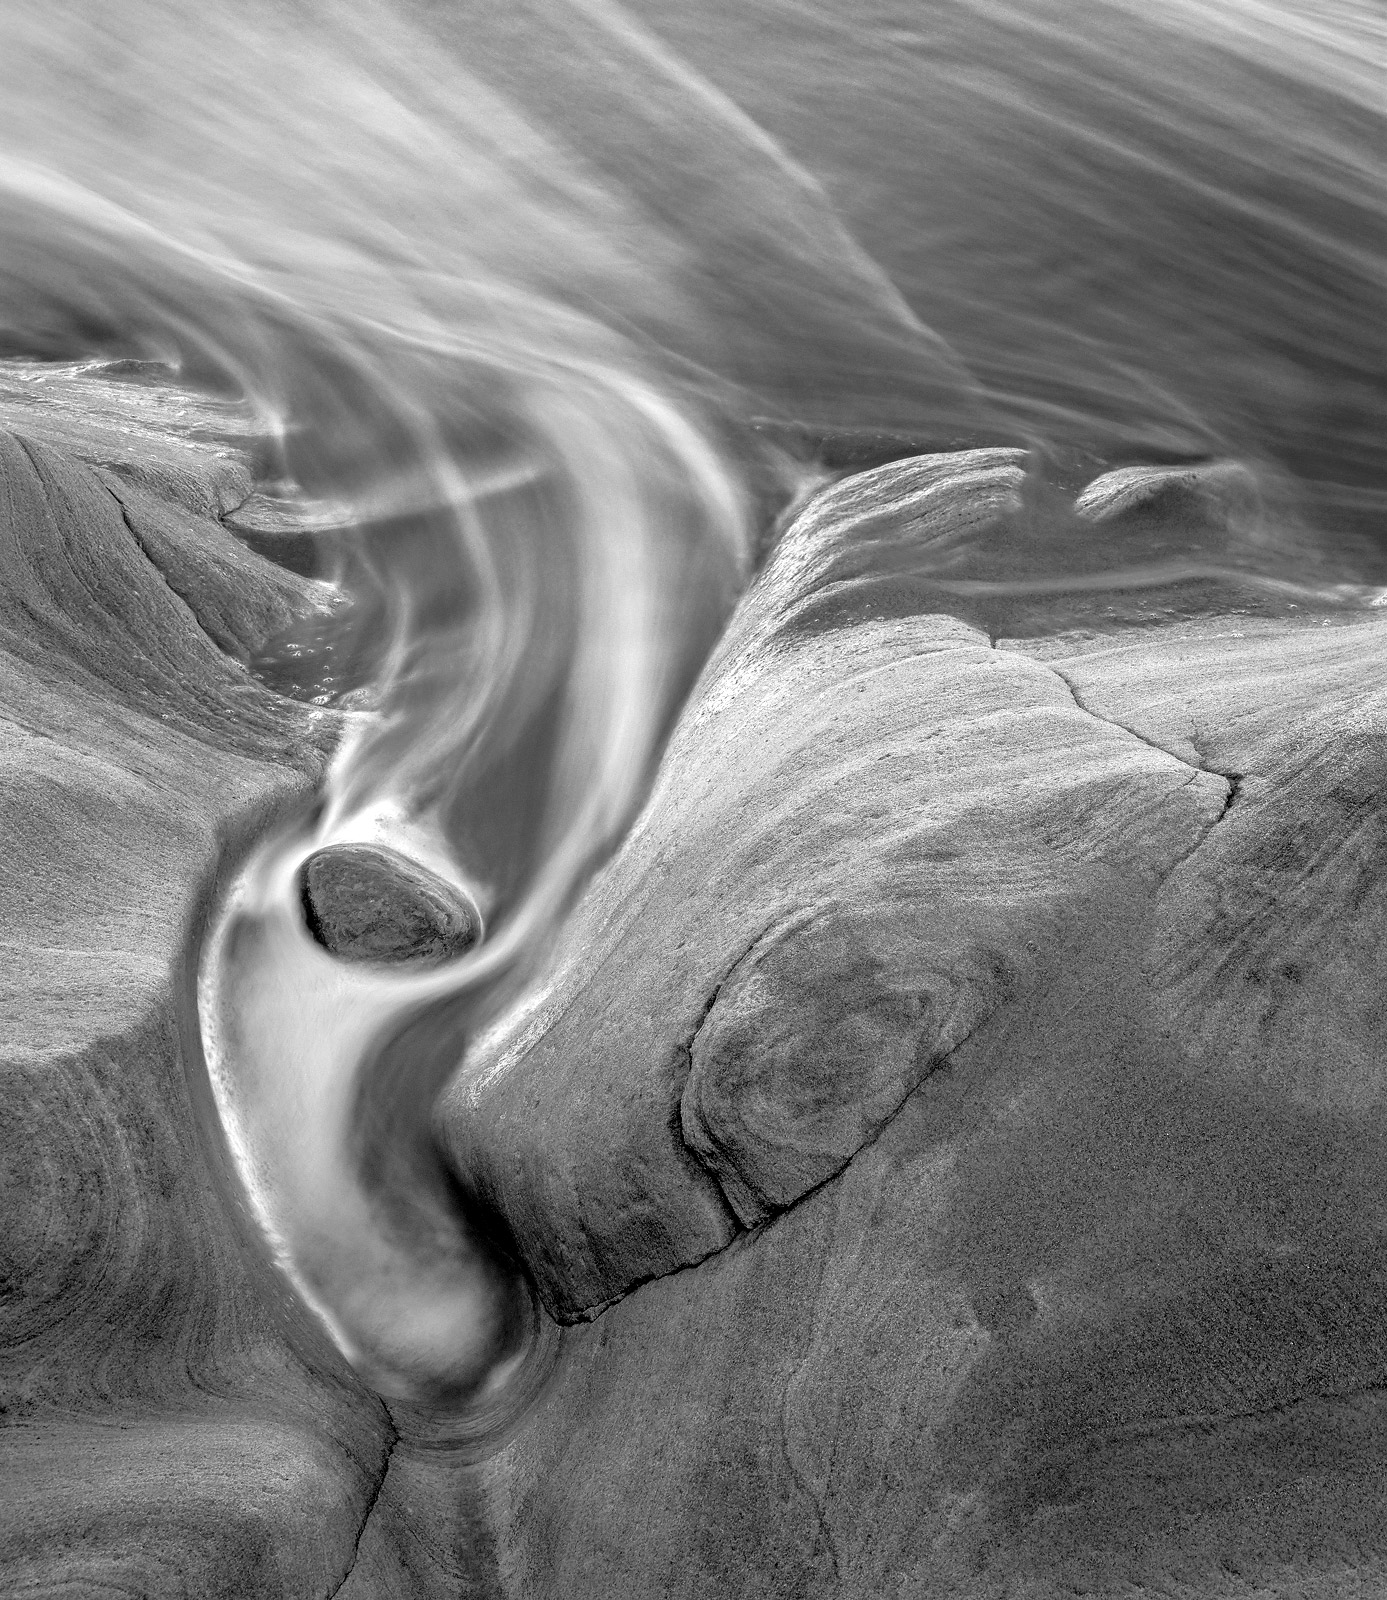 Swirls of water receding from indentations in tide sculpted sandstones create fascinating patterns this monochrome version concentrates...